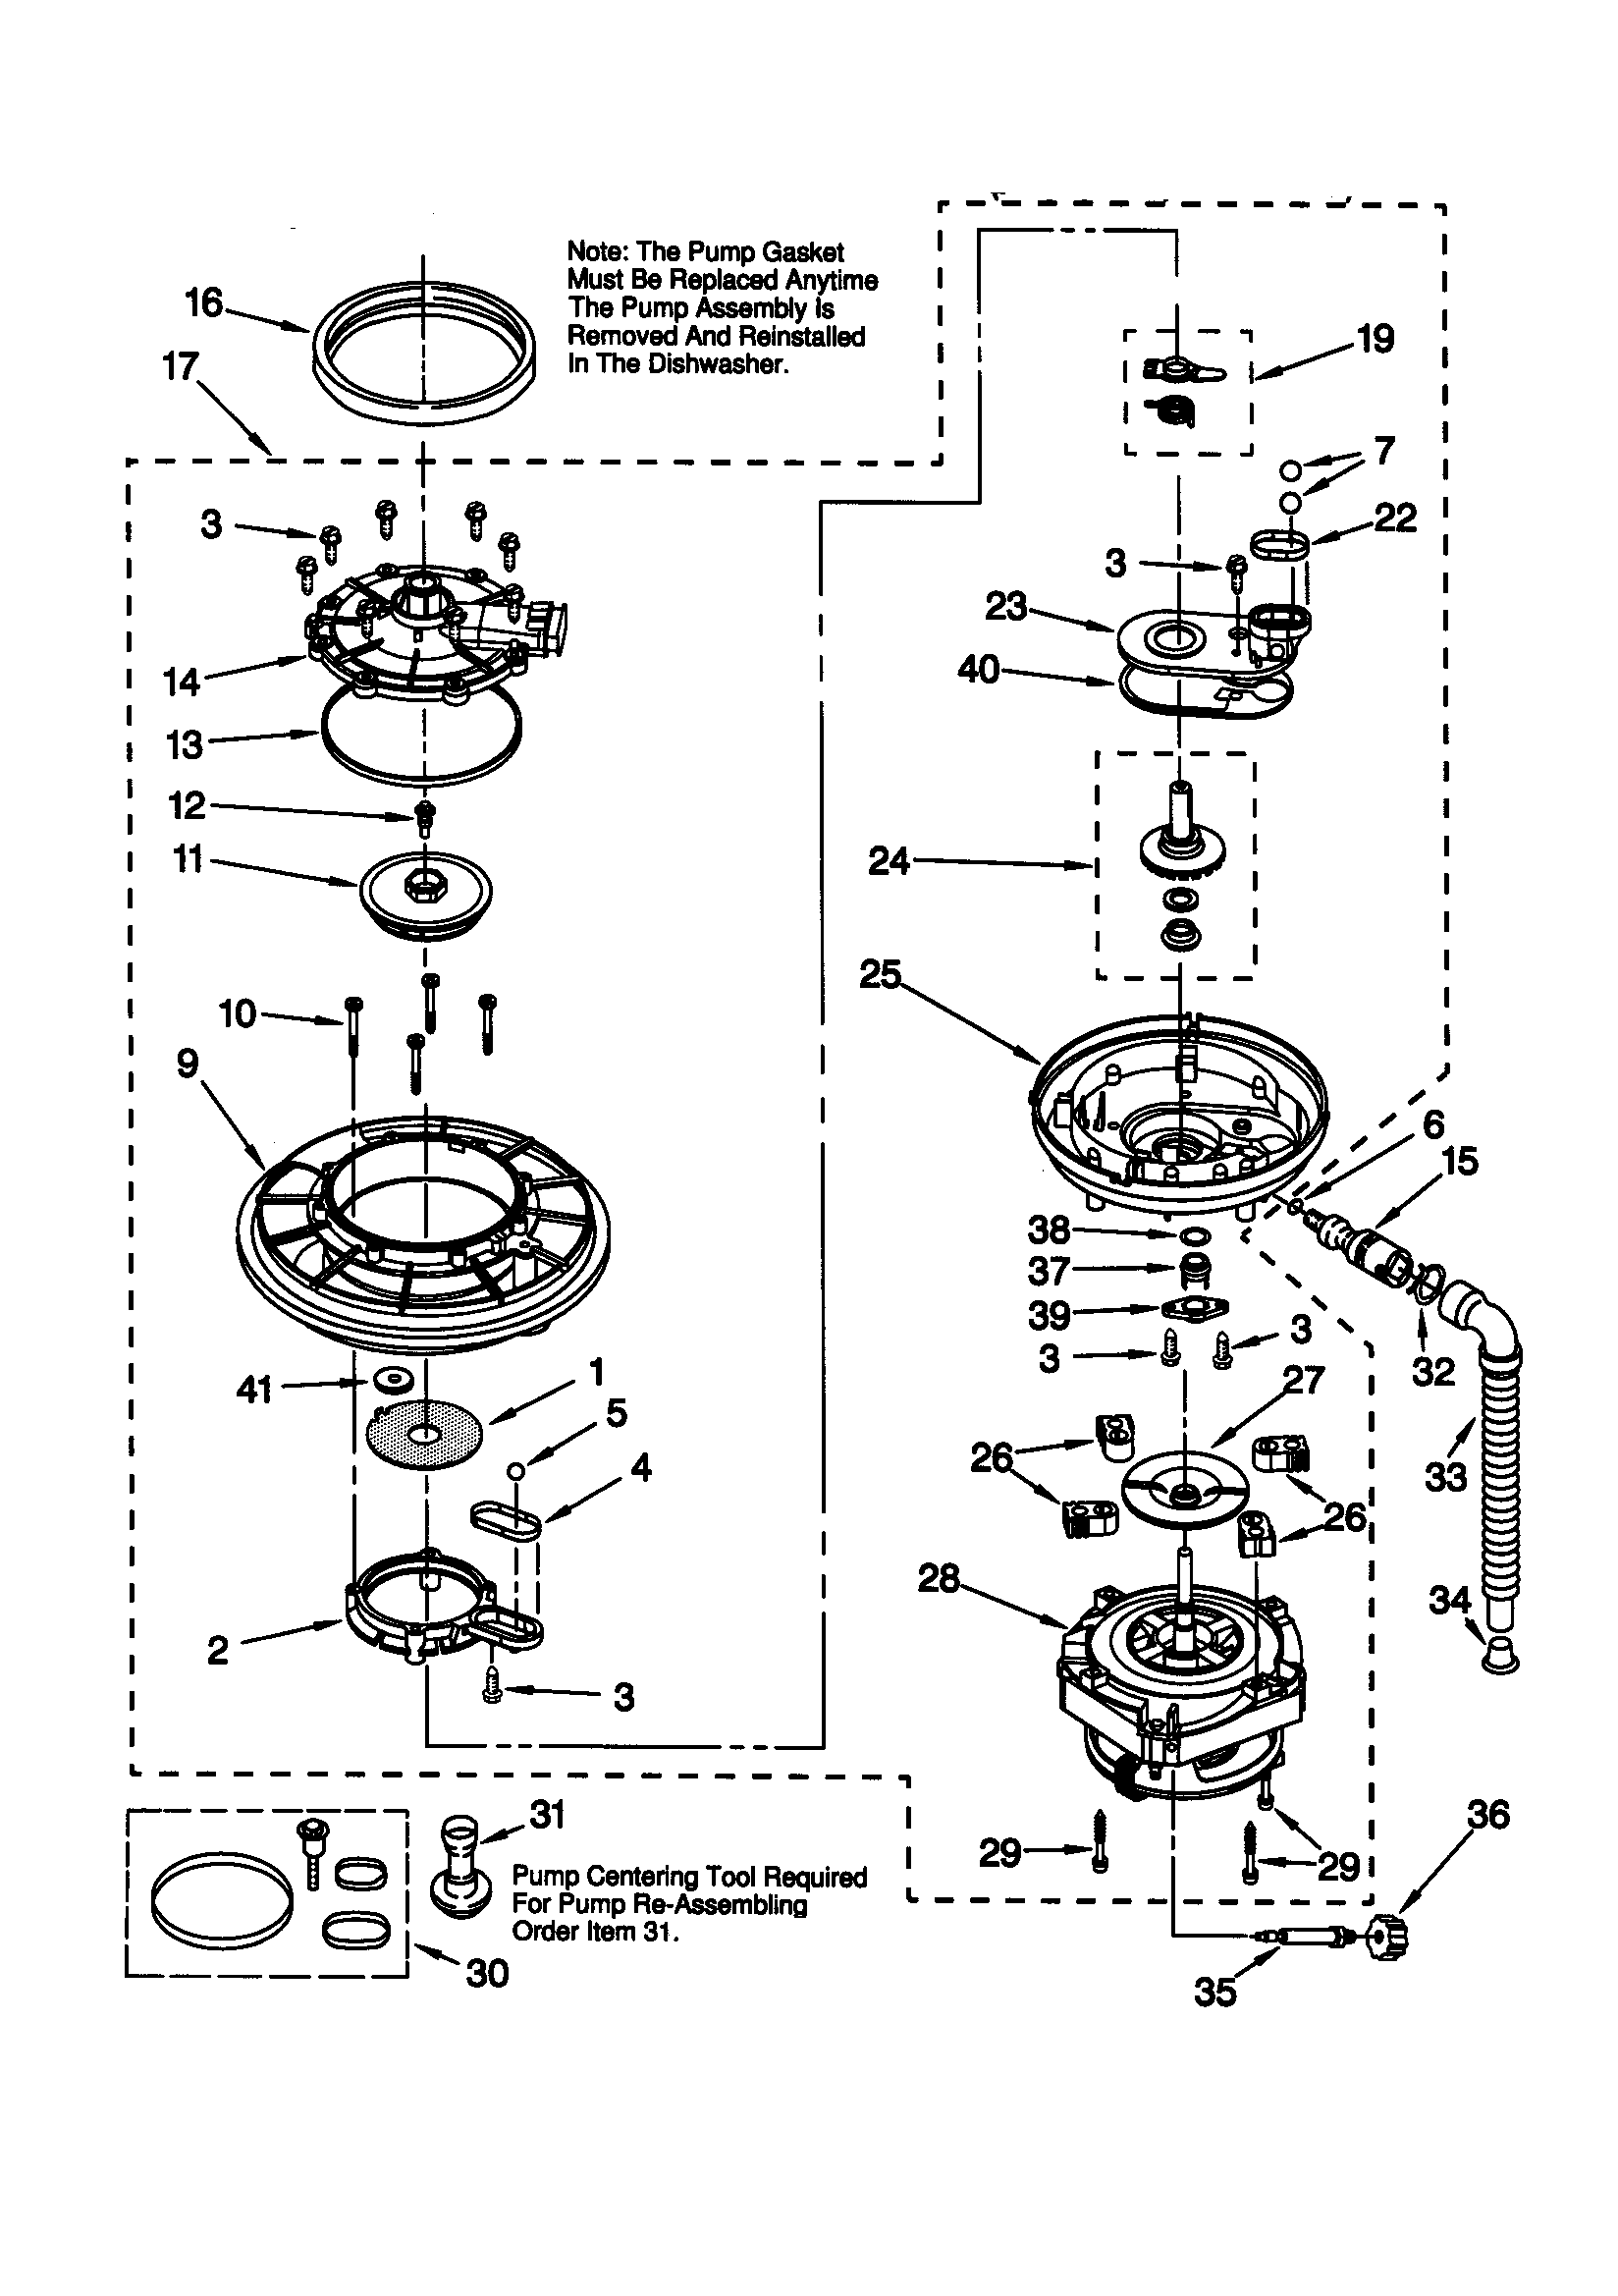 PUMP AND MOTOR Diagram & Parts List for Model 66515989990